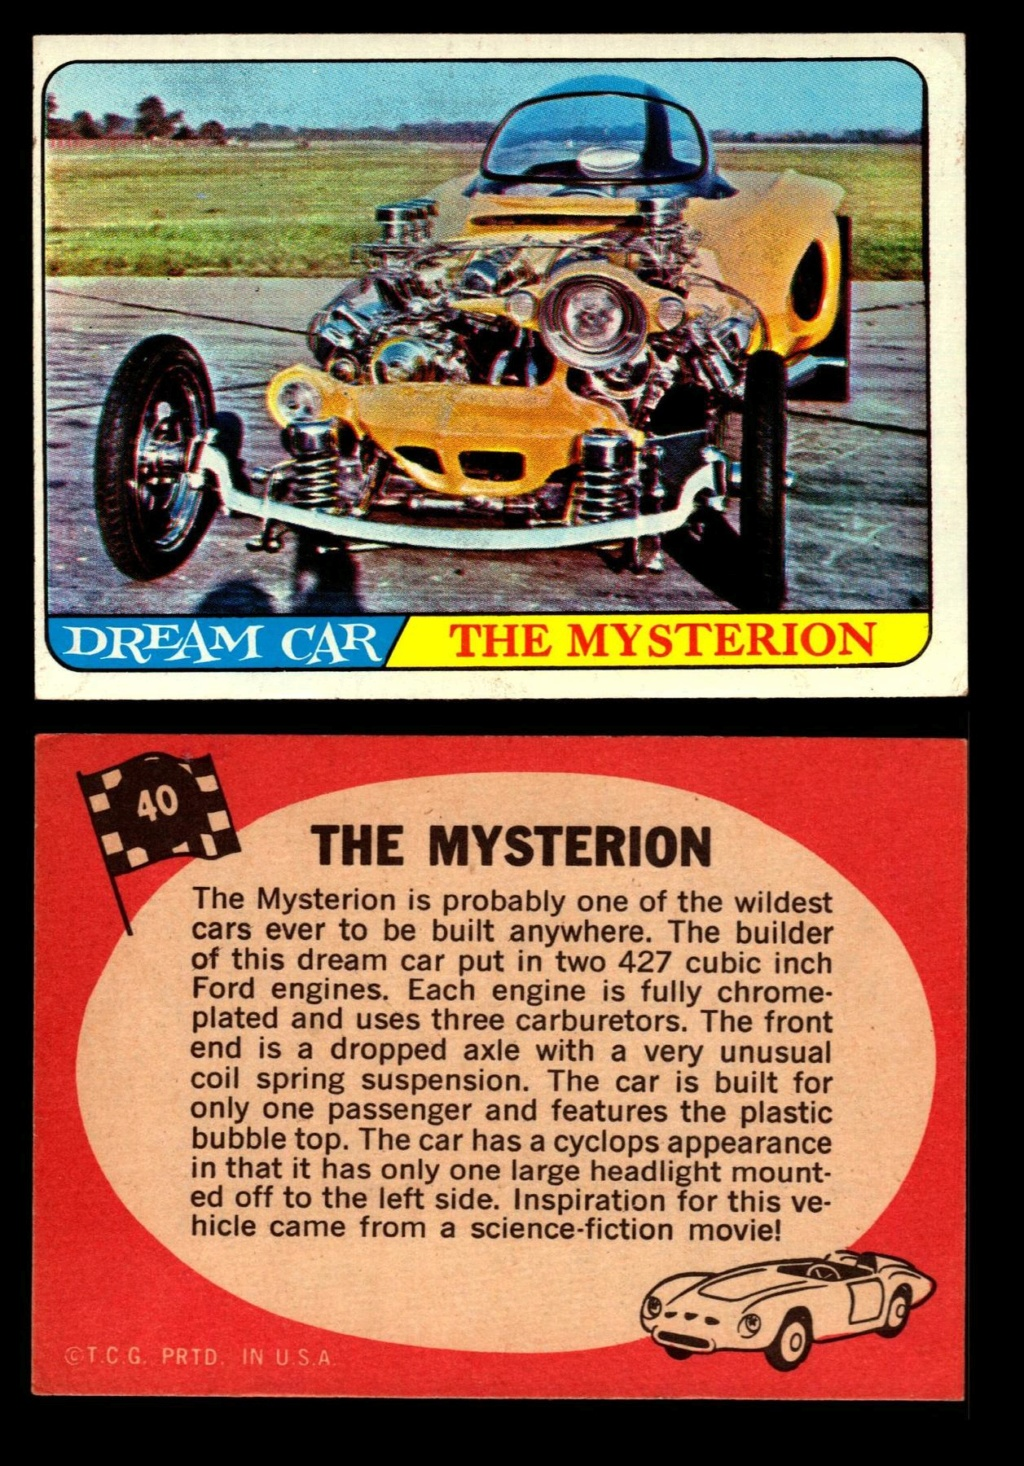 Hot Rods Topps - Vintage Trading Cards 1968 - Custom car - Dragster - Racer - Dream car - Barris Kustom City - Ed Roth Darrill Starbird, Gene Winfield, Bill Cuchenberry - Page 2 40_ac910